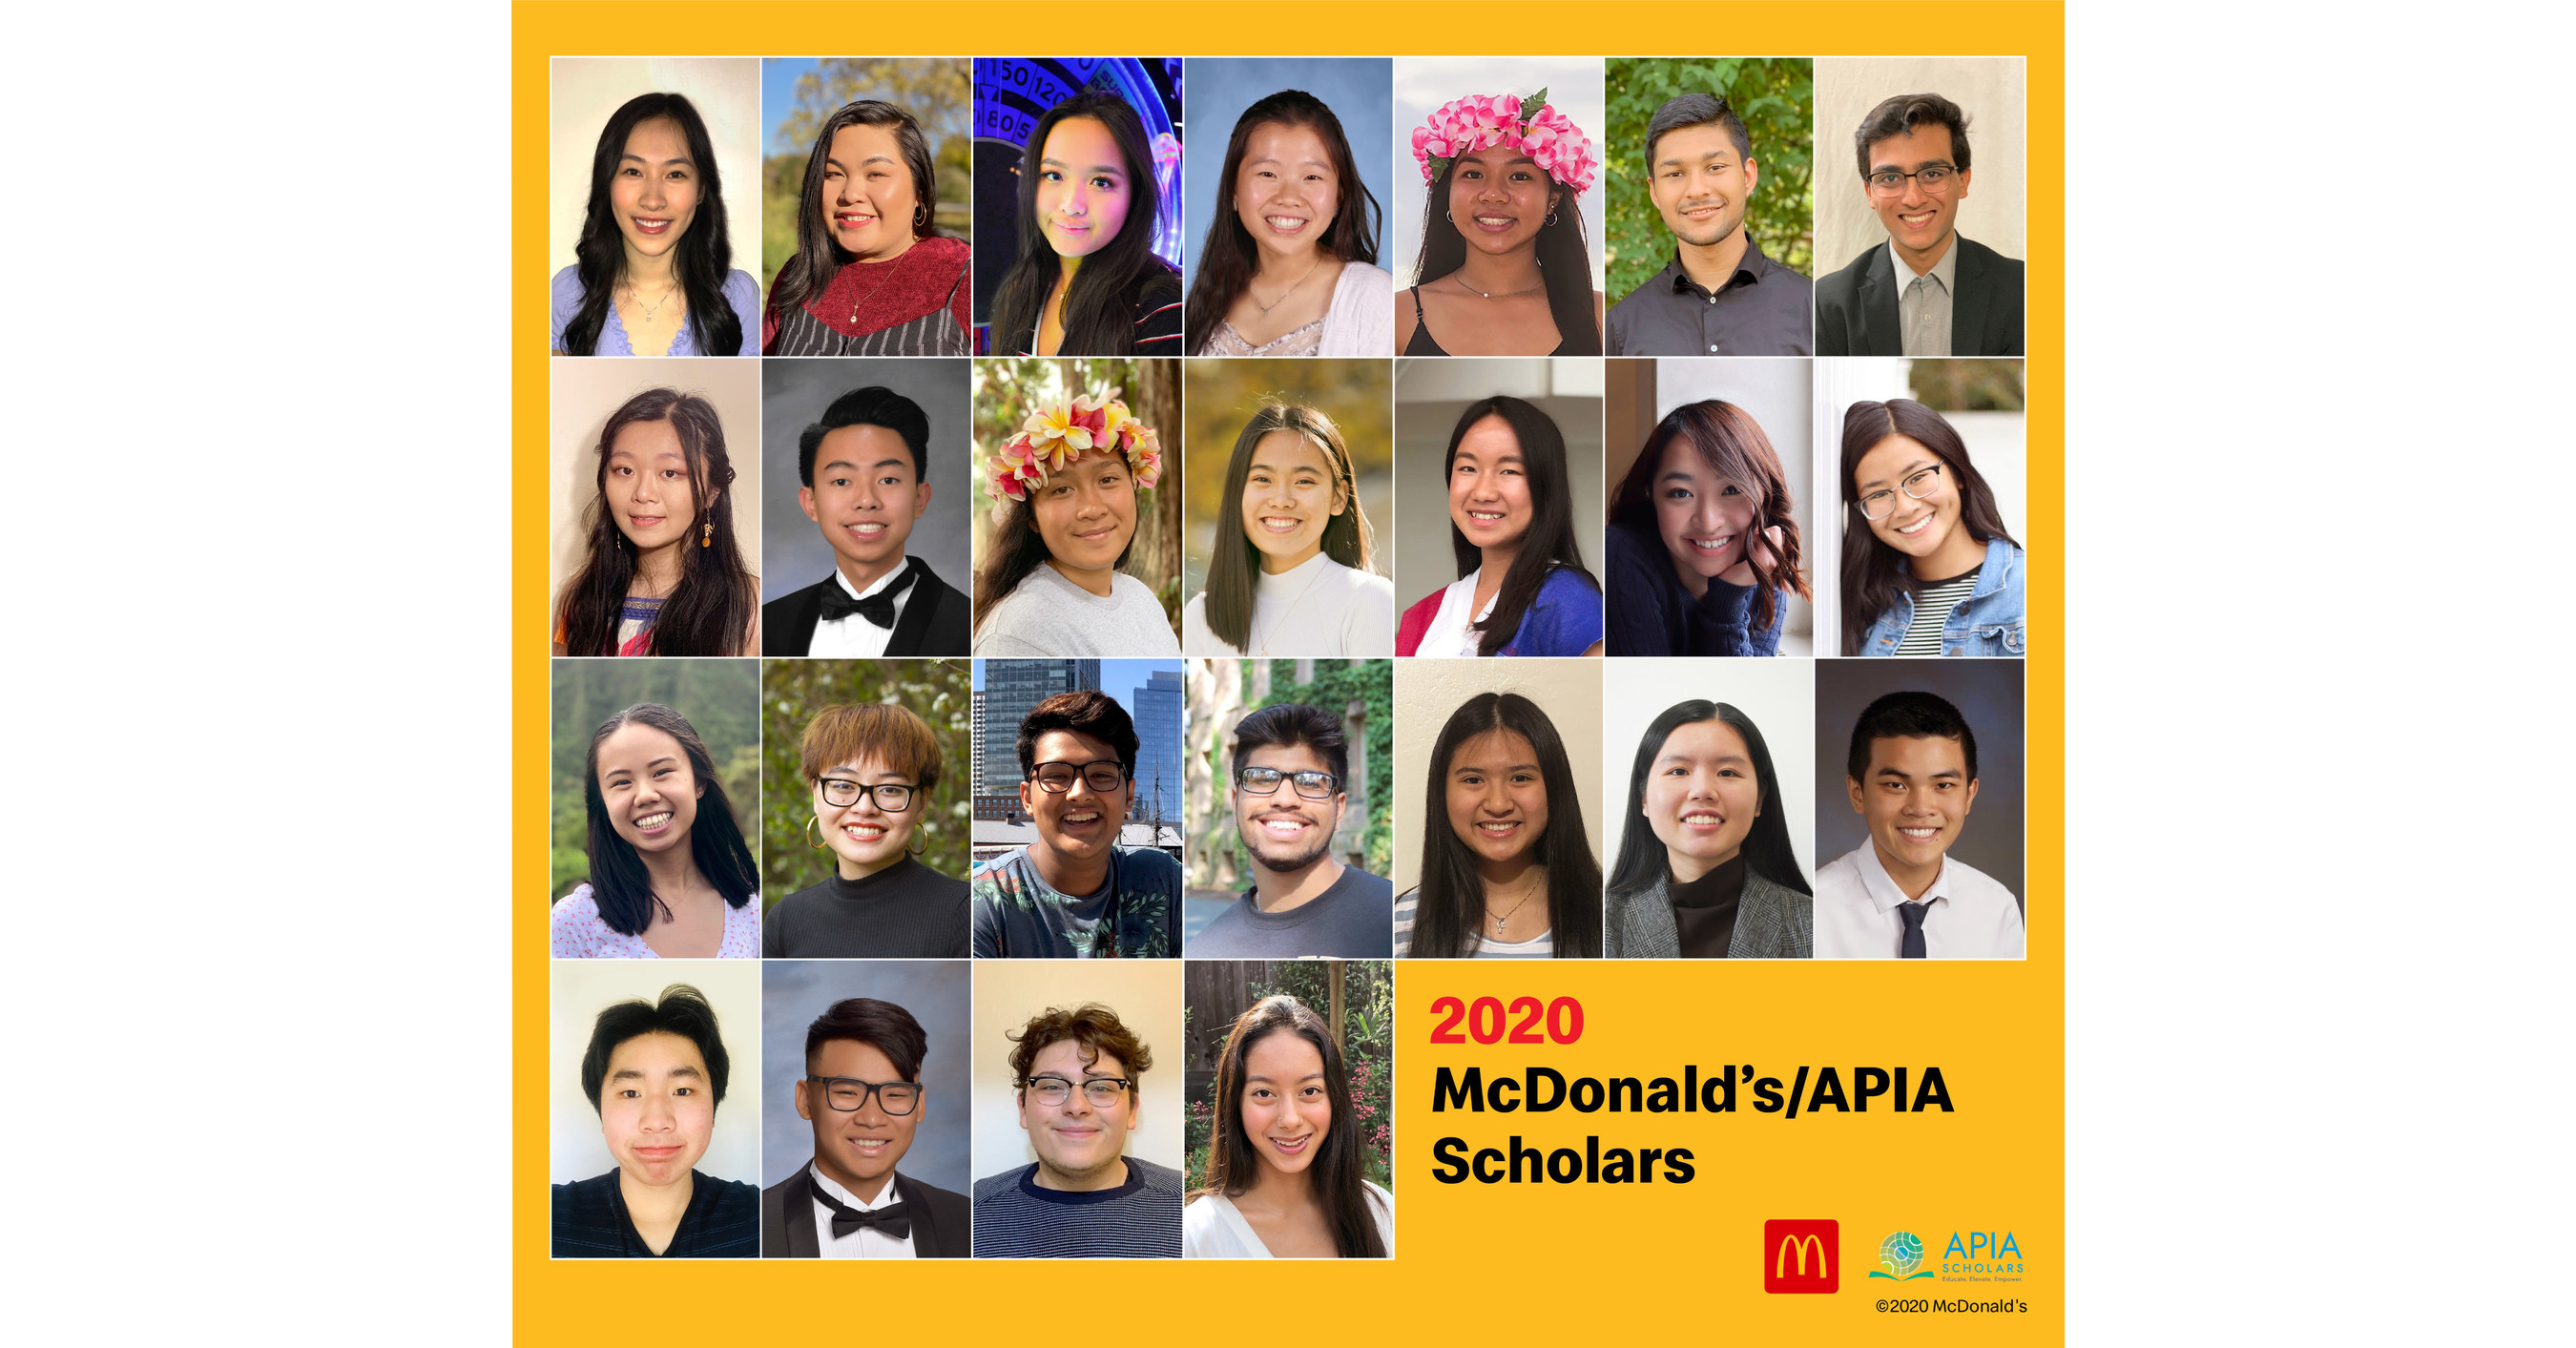 www.prnewswire.com: McDonald's/APIA Scholarship Program Awards A Half A Million Dollars In Scholarships To Help Asian And Pacific Islander American Students Attend College